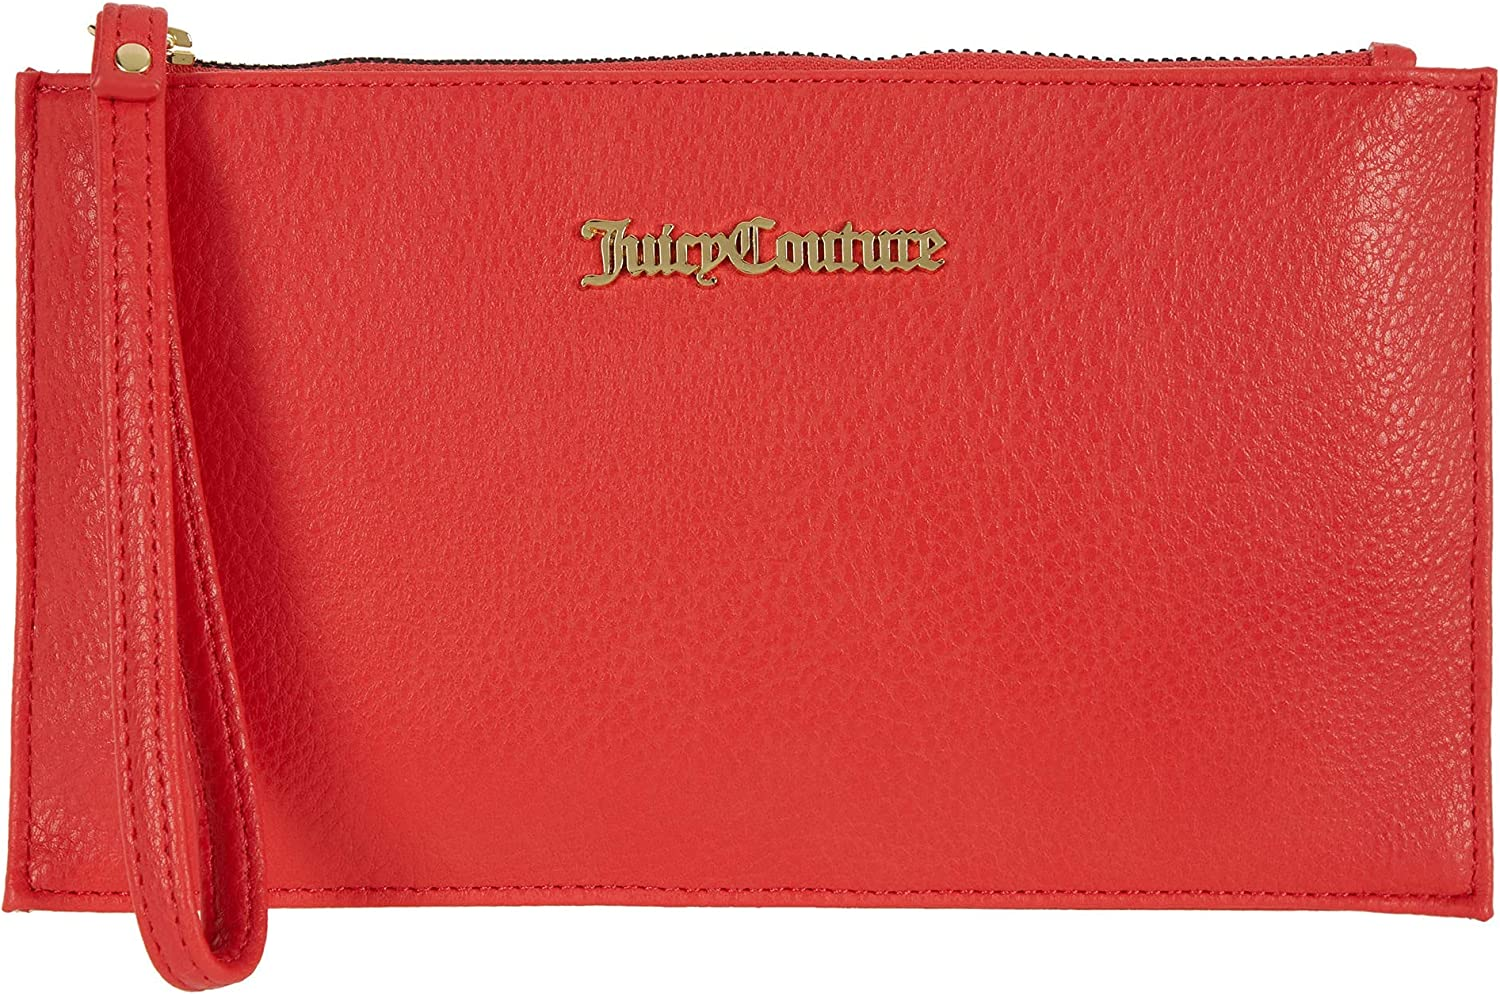 Juicy Couture Zippered Up Wristlet